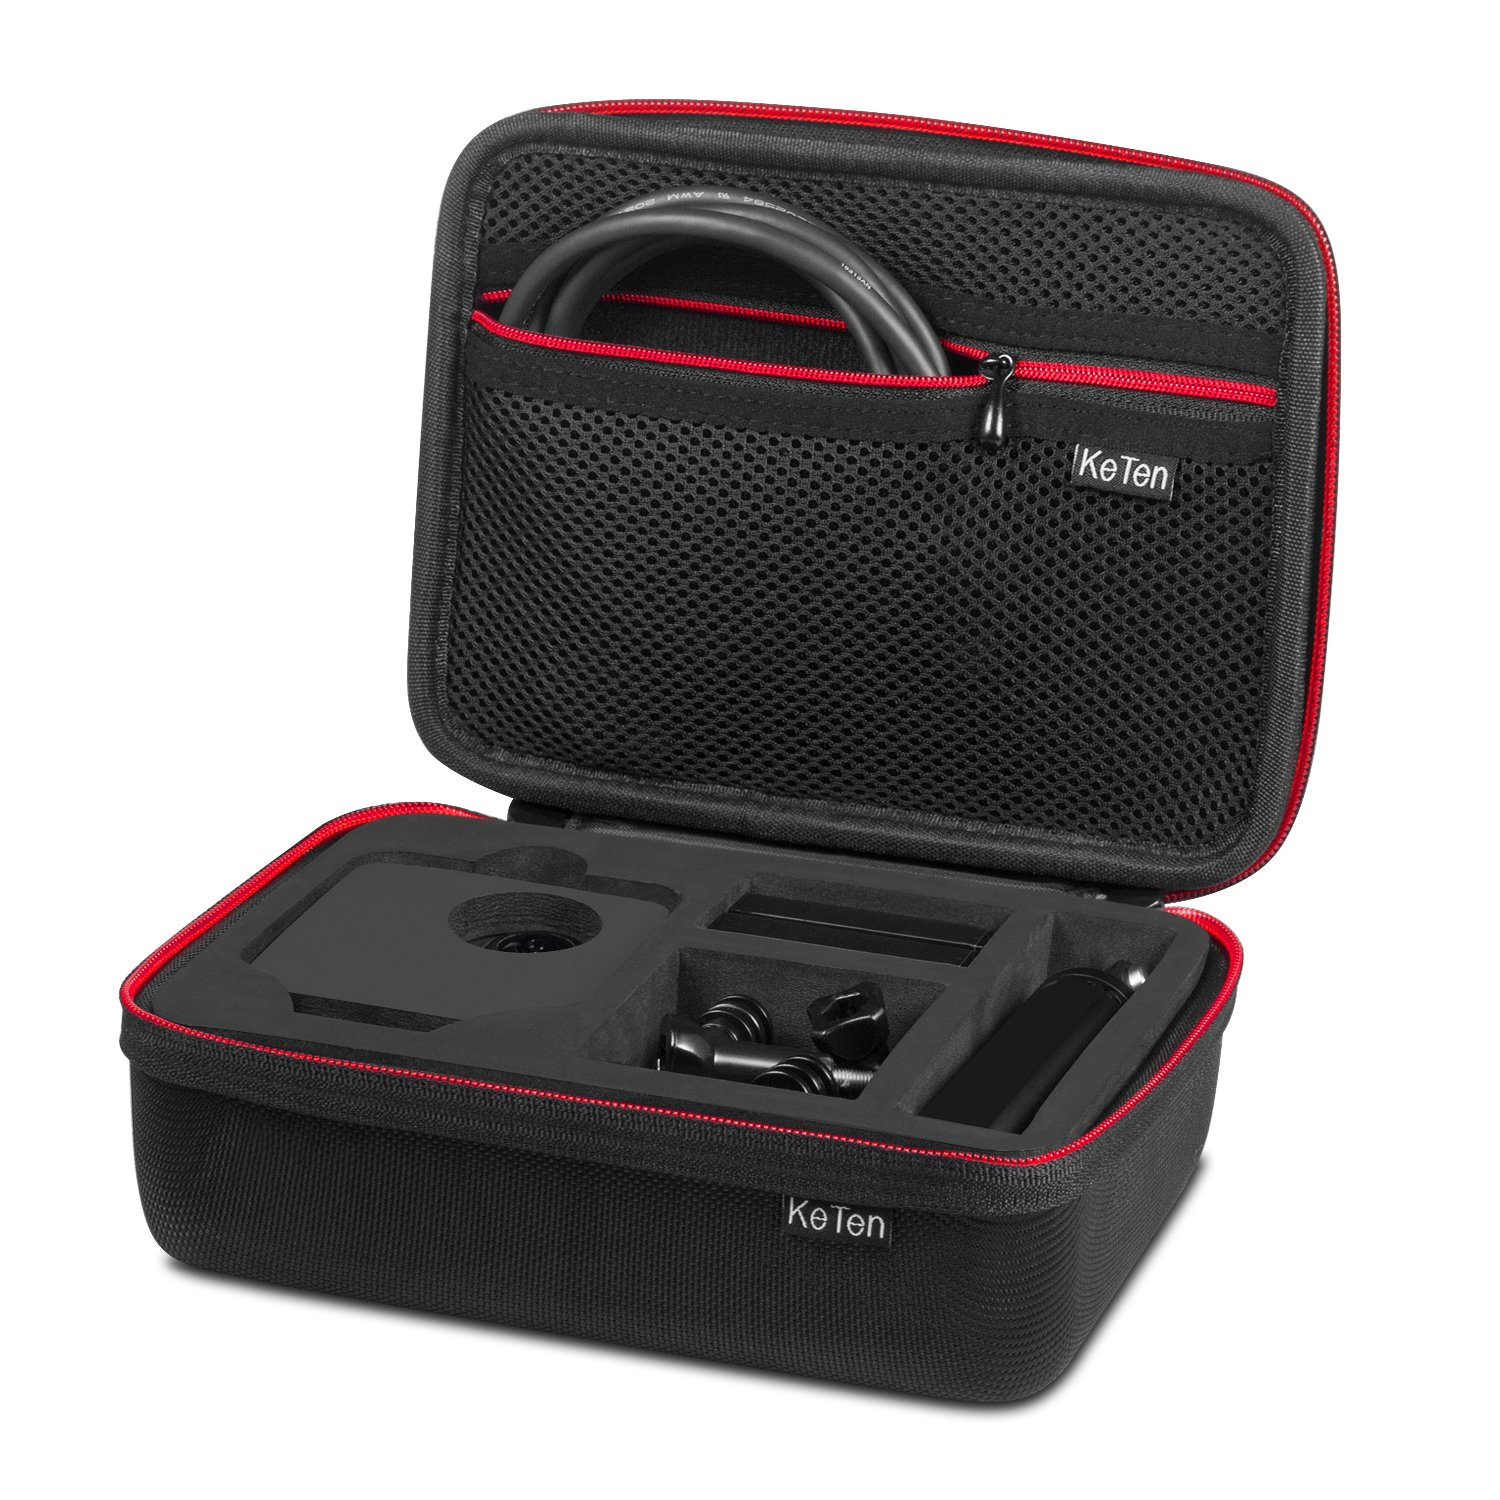 GoPro Fusion Case, Keten Deluxe Travel Carrying Case with Buffer Sponge, Hard Shell Case, Large Storage for Adapter and Other GoPro Accessories, Best Protective Case for GoPro Camera by Keten